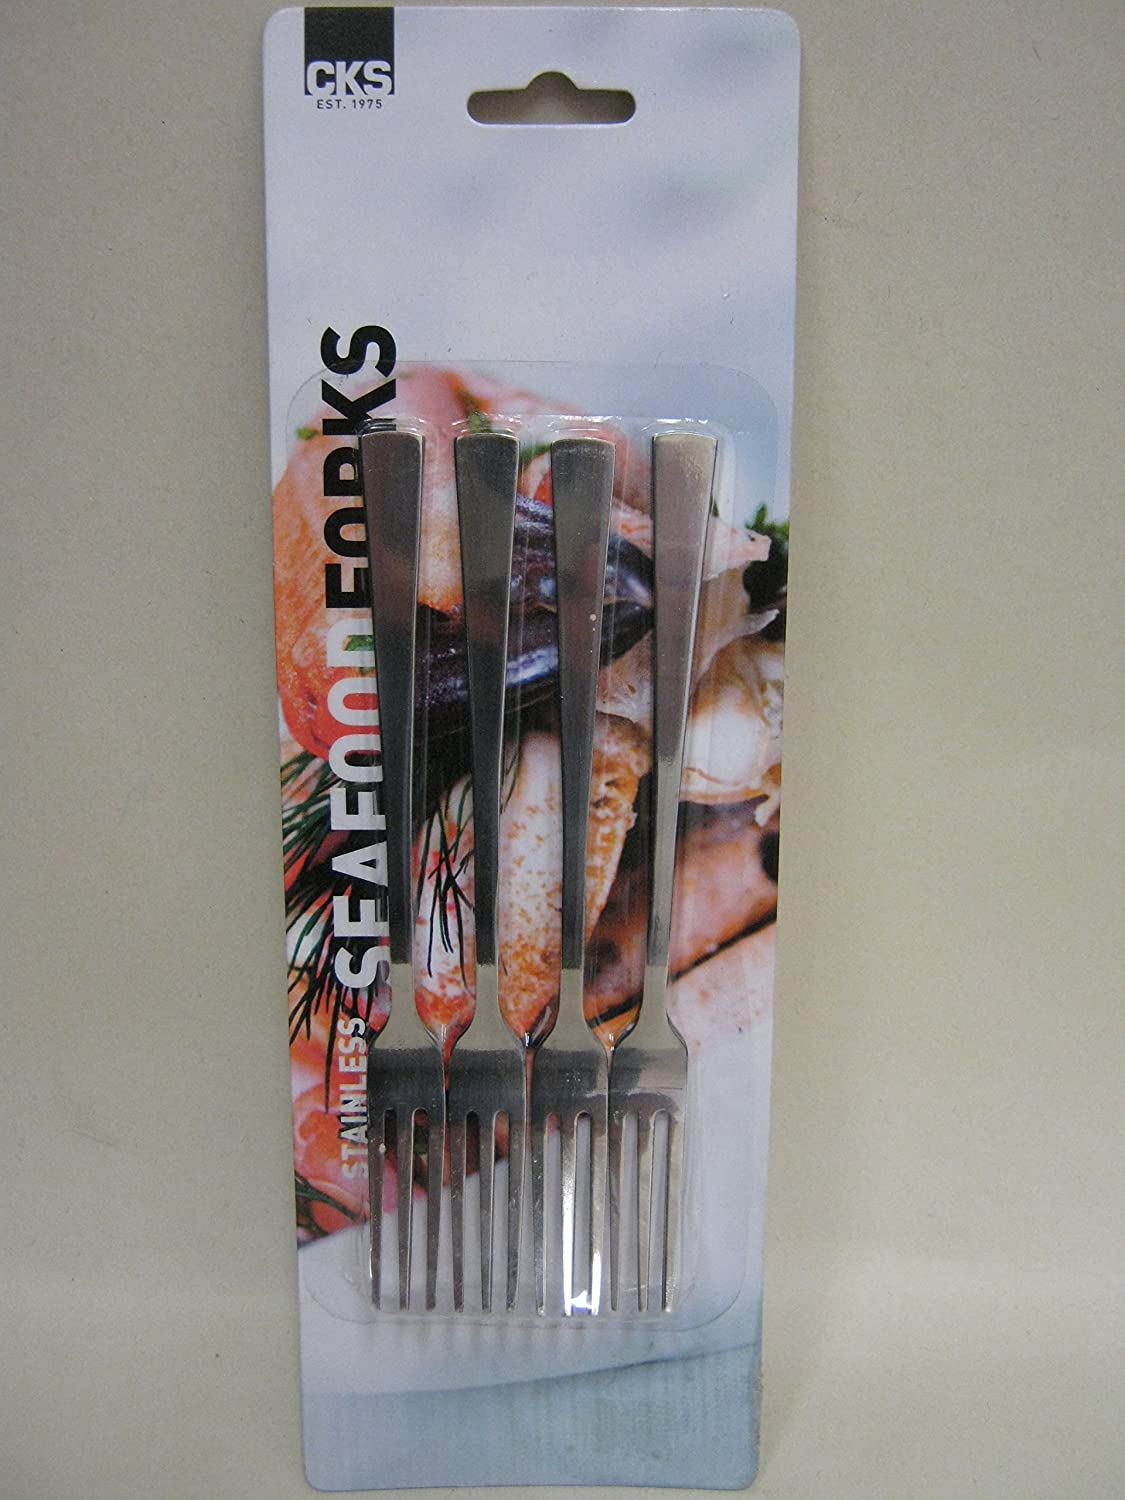 New CKS Seafoods Forks Stainless Steel Pk 4 J292